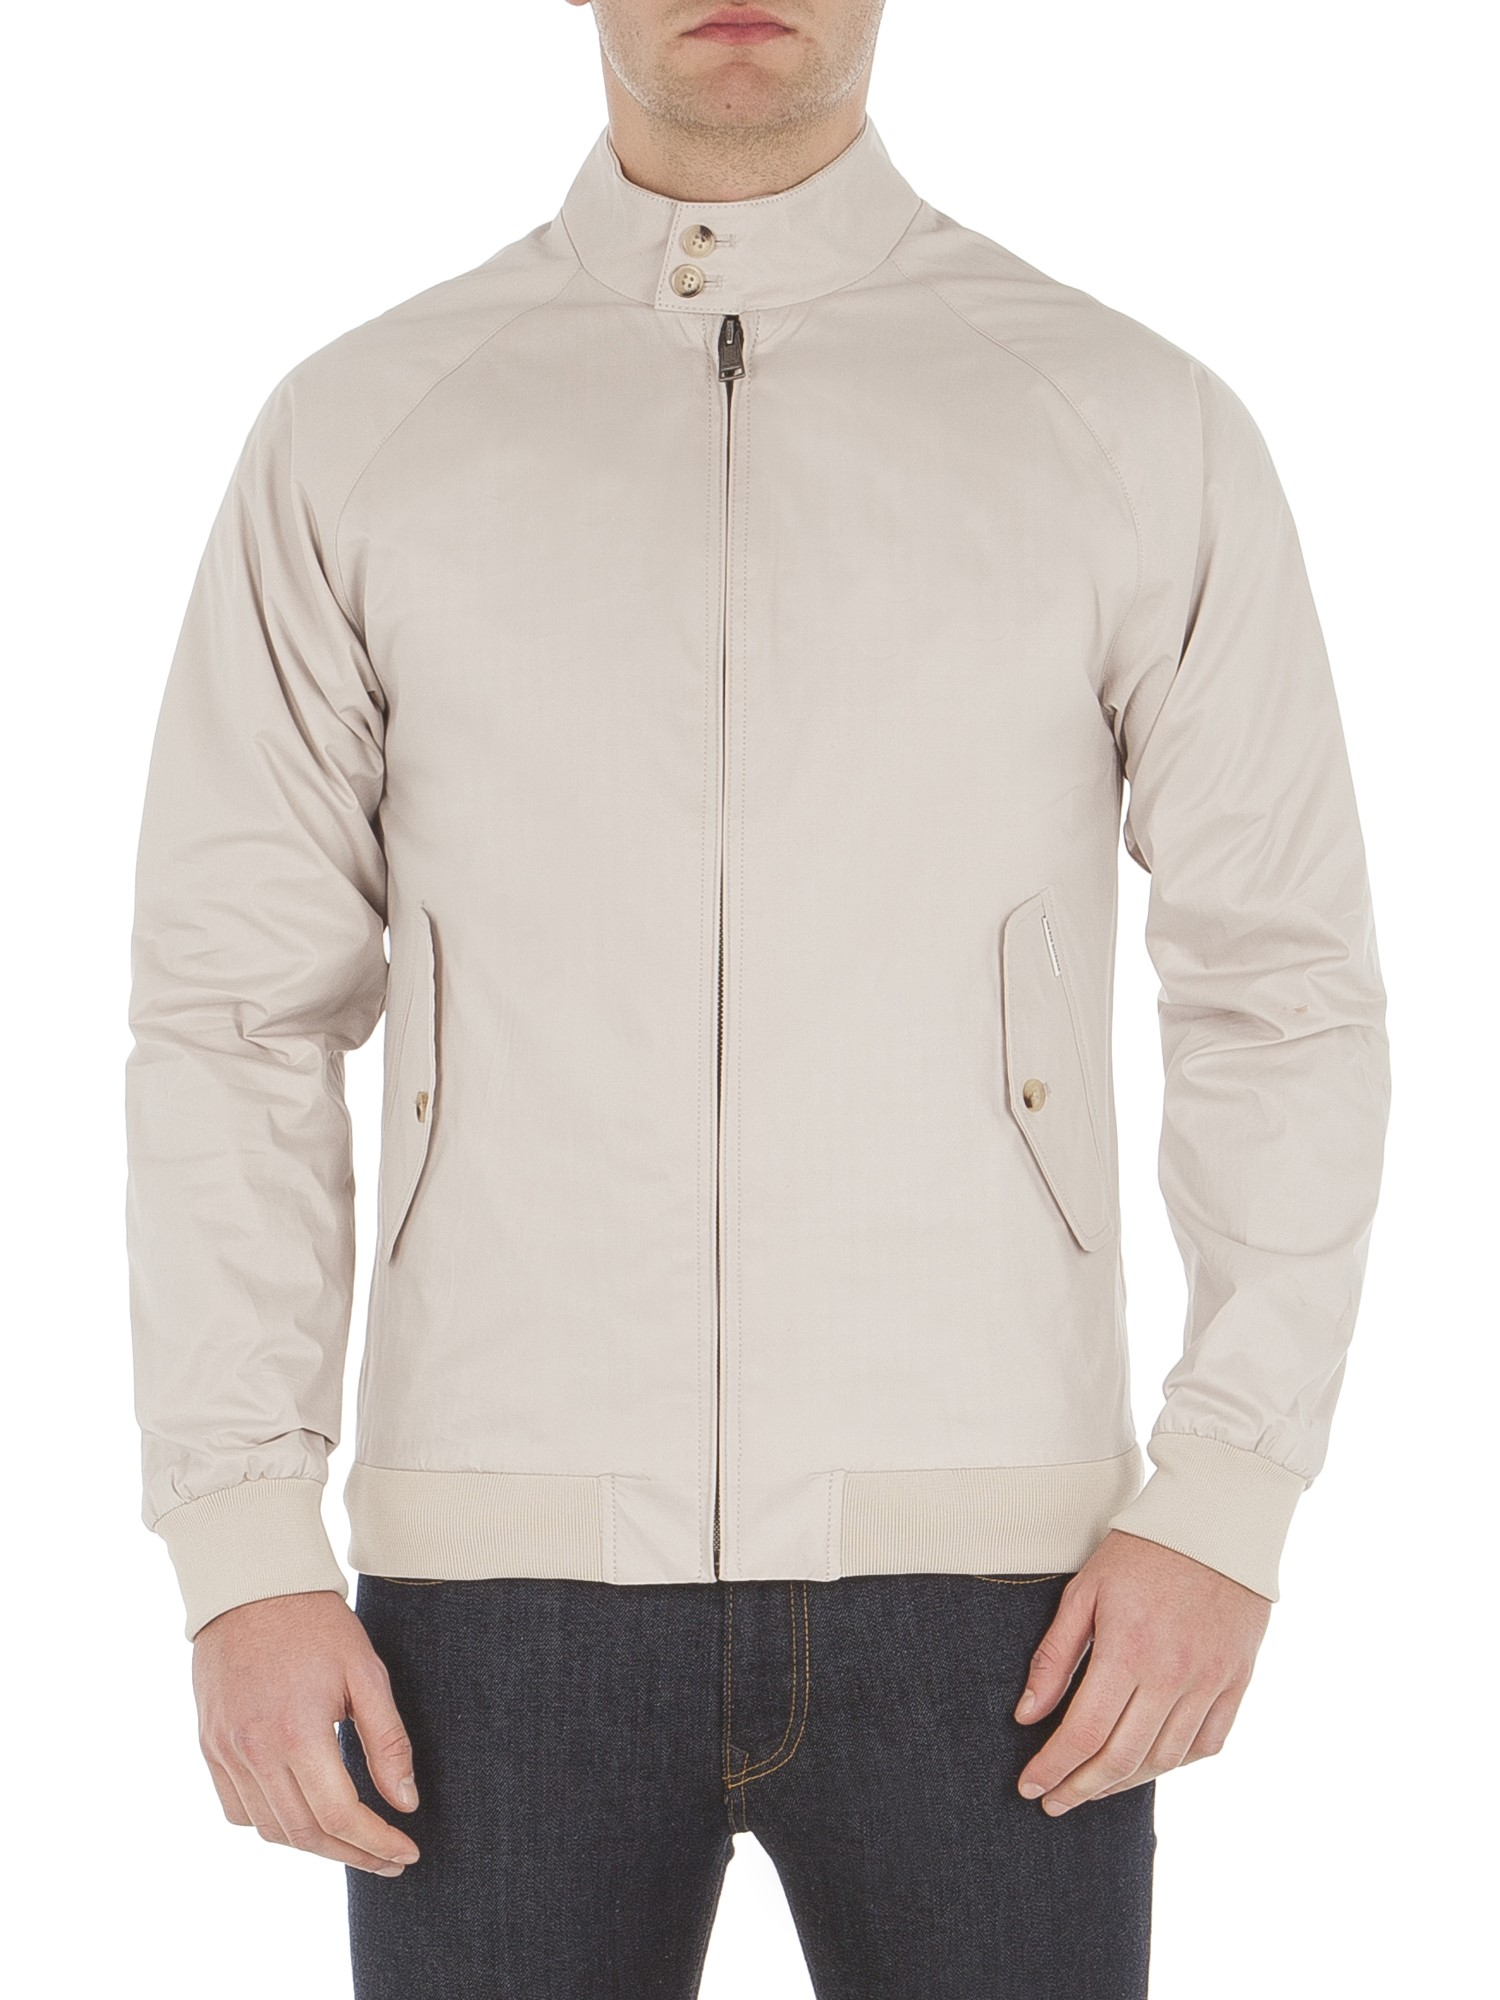 Ben Sherman Sand Stone Cotton Harrington Jacket